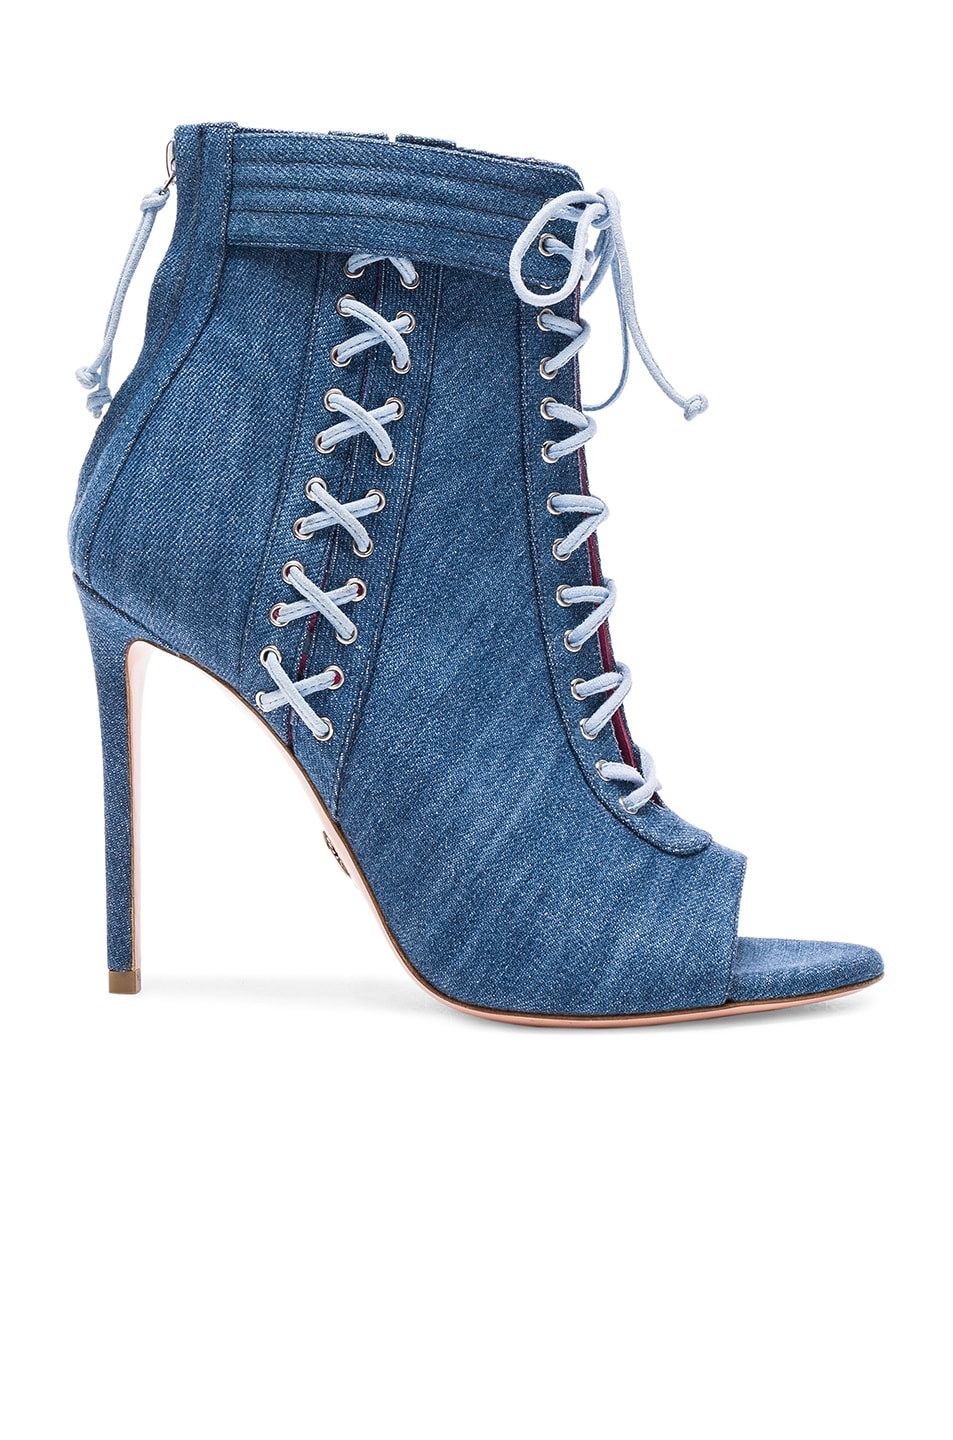 Image 1 of Oscar Tiye Denim Sami T Booties in Blue Denim